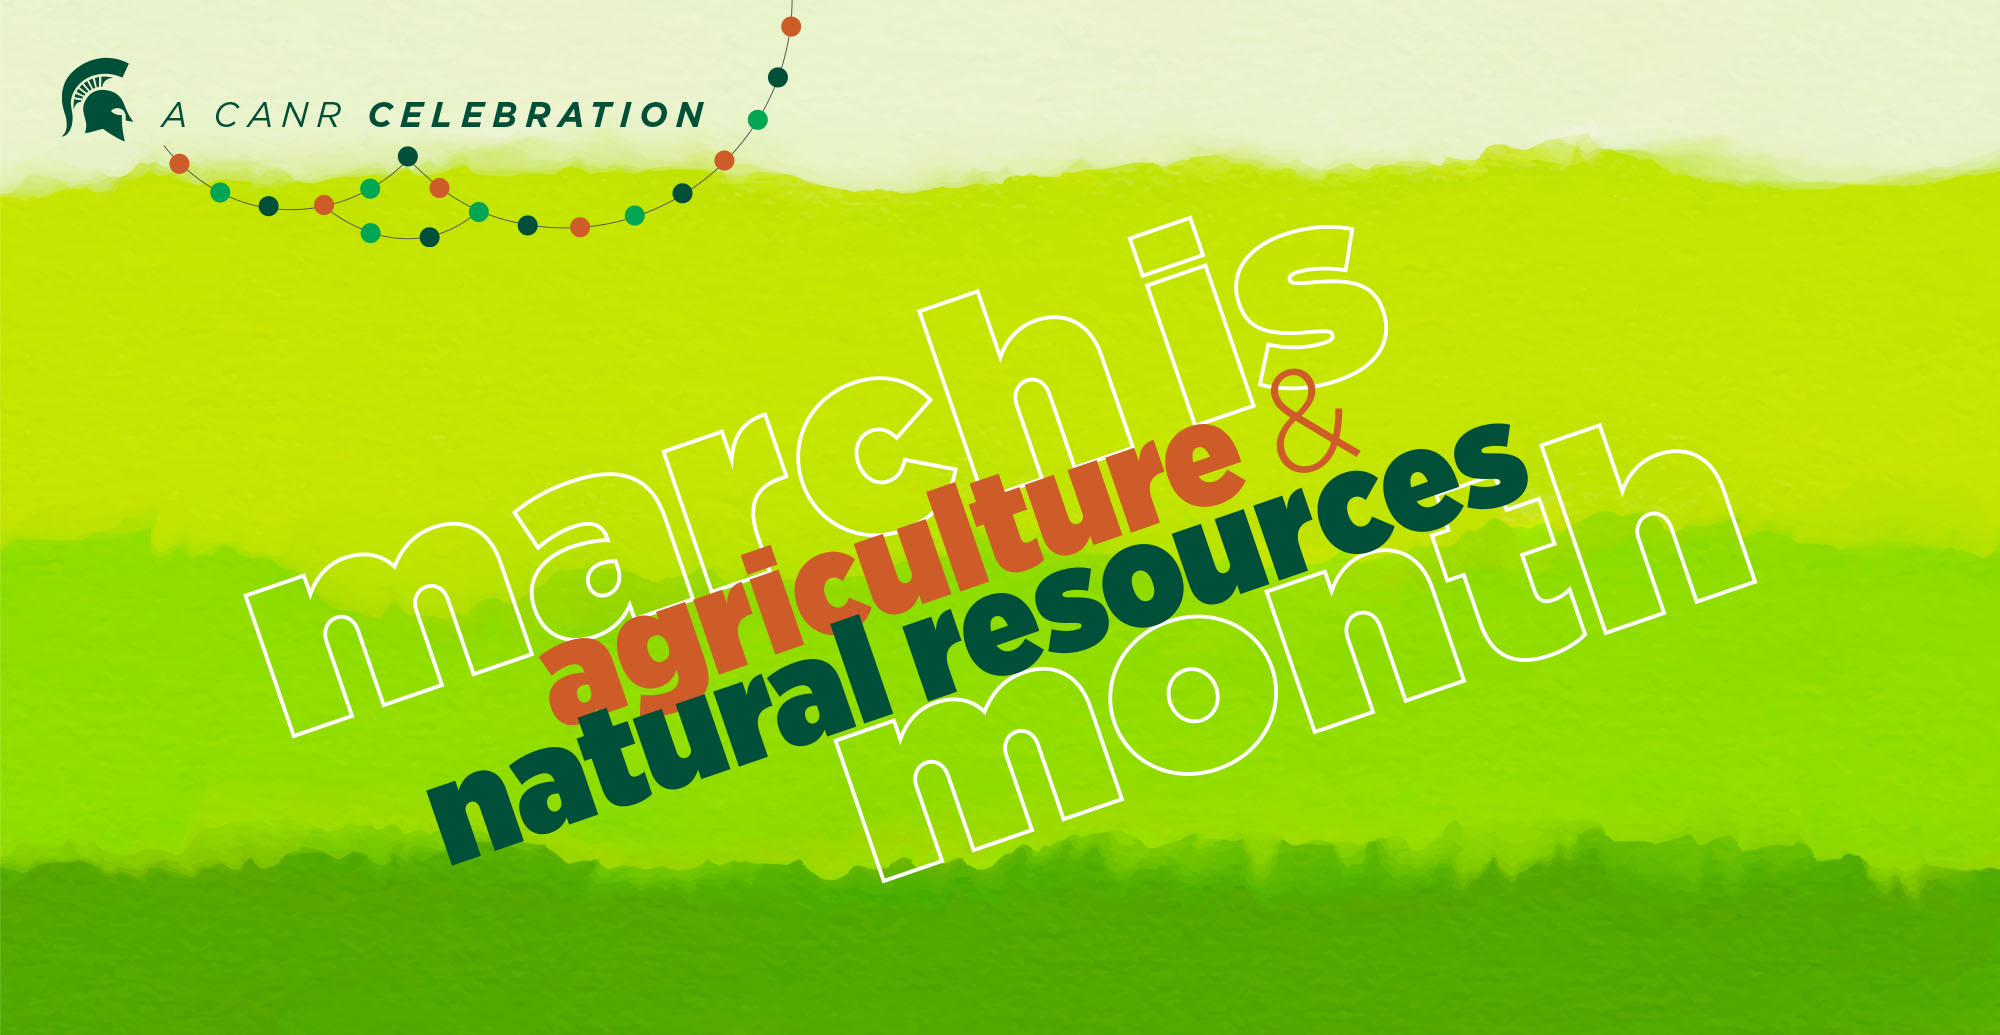 A CANR Celebration: March is agriculture and natural resources month